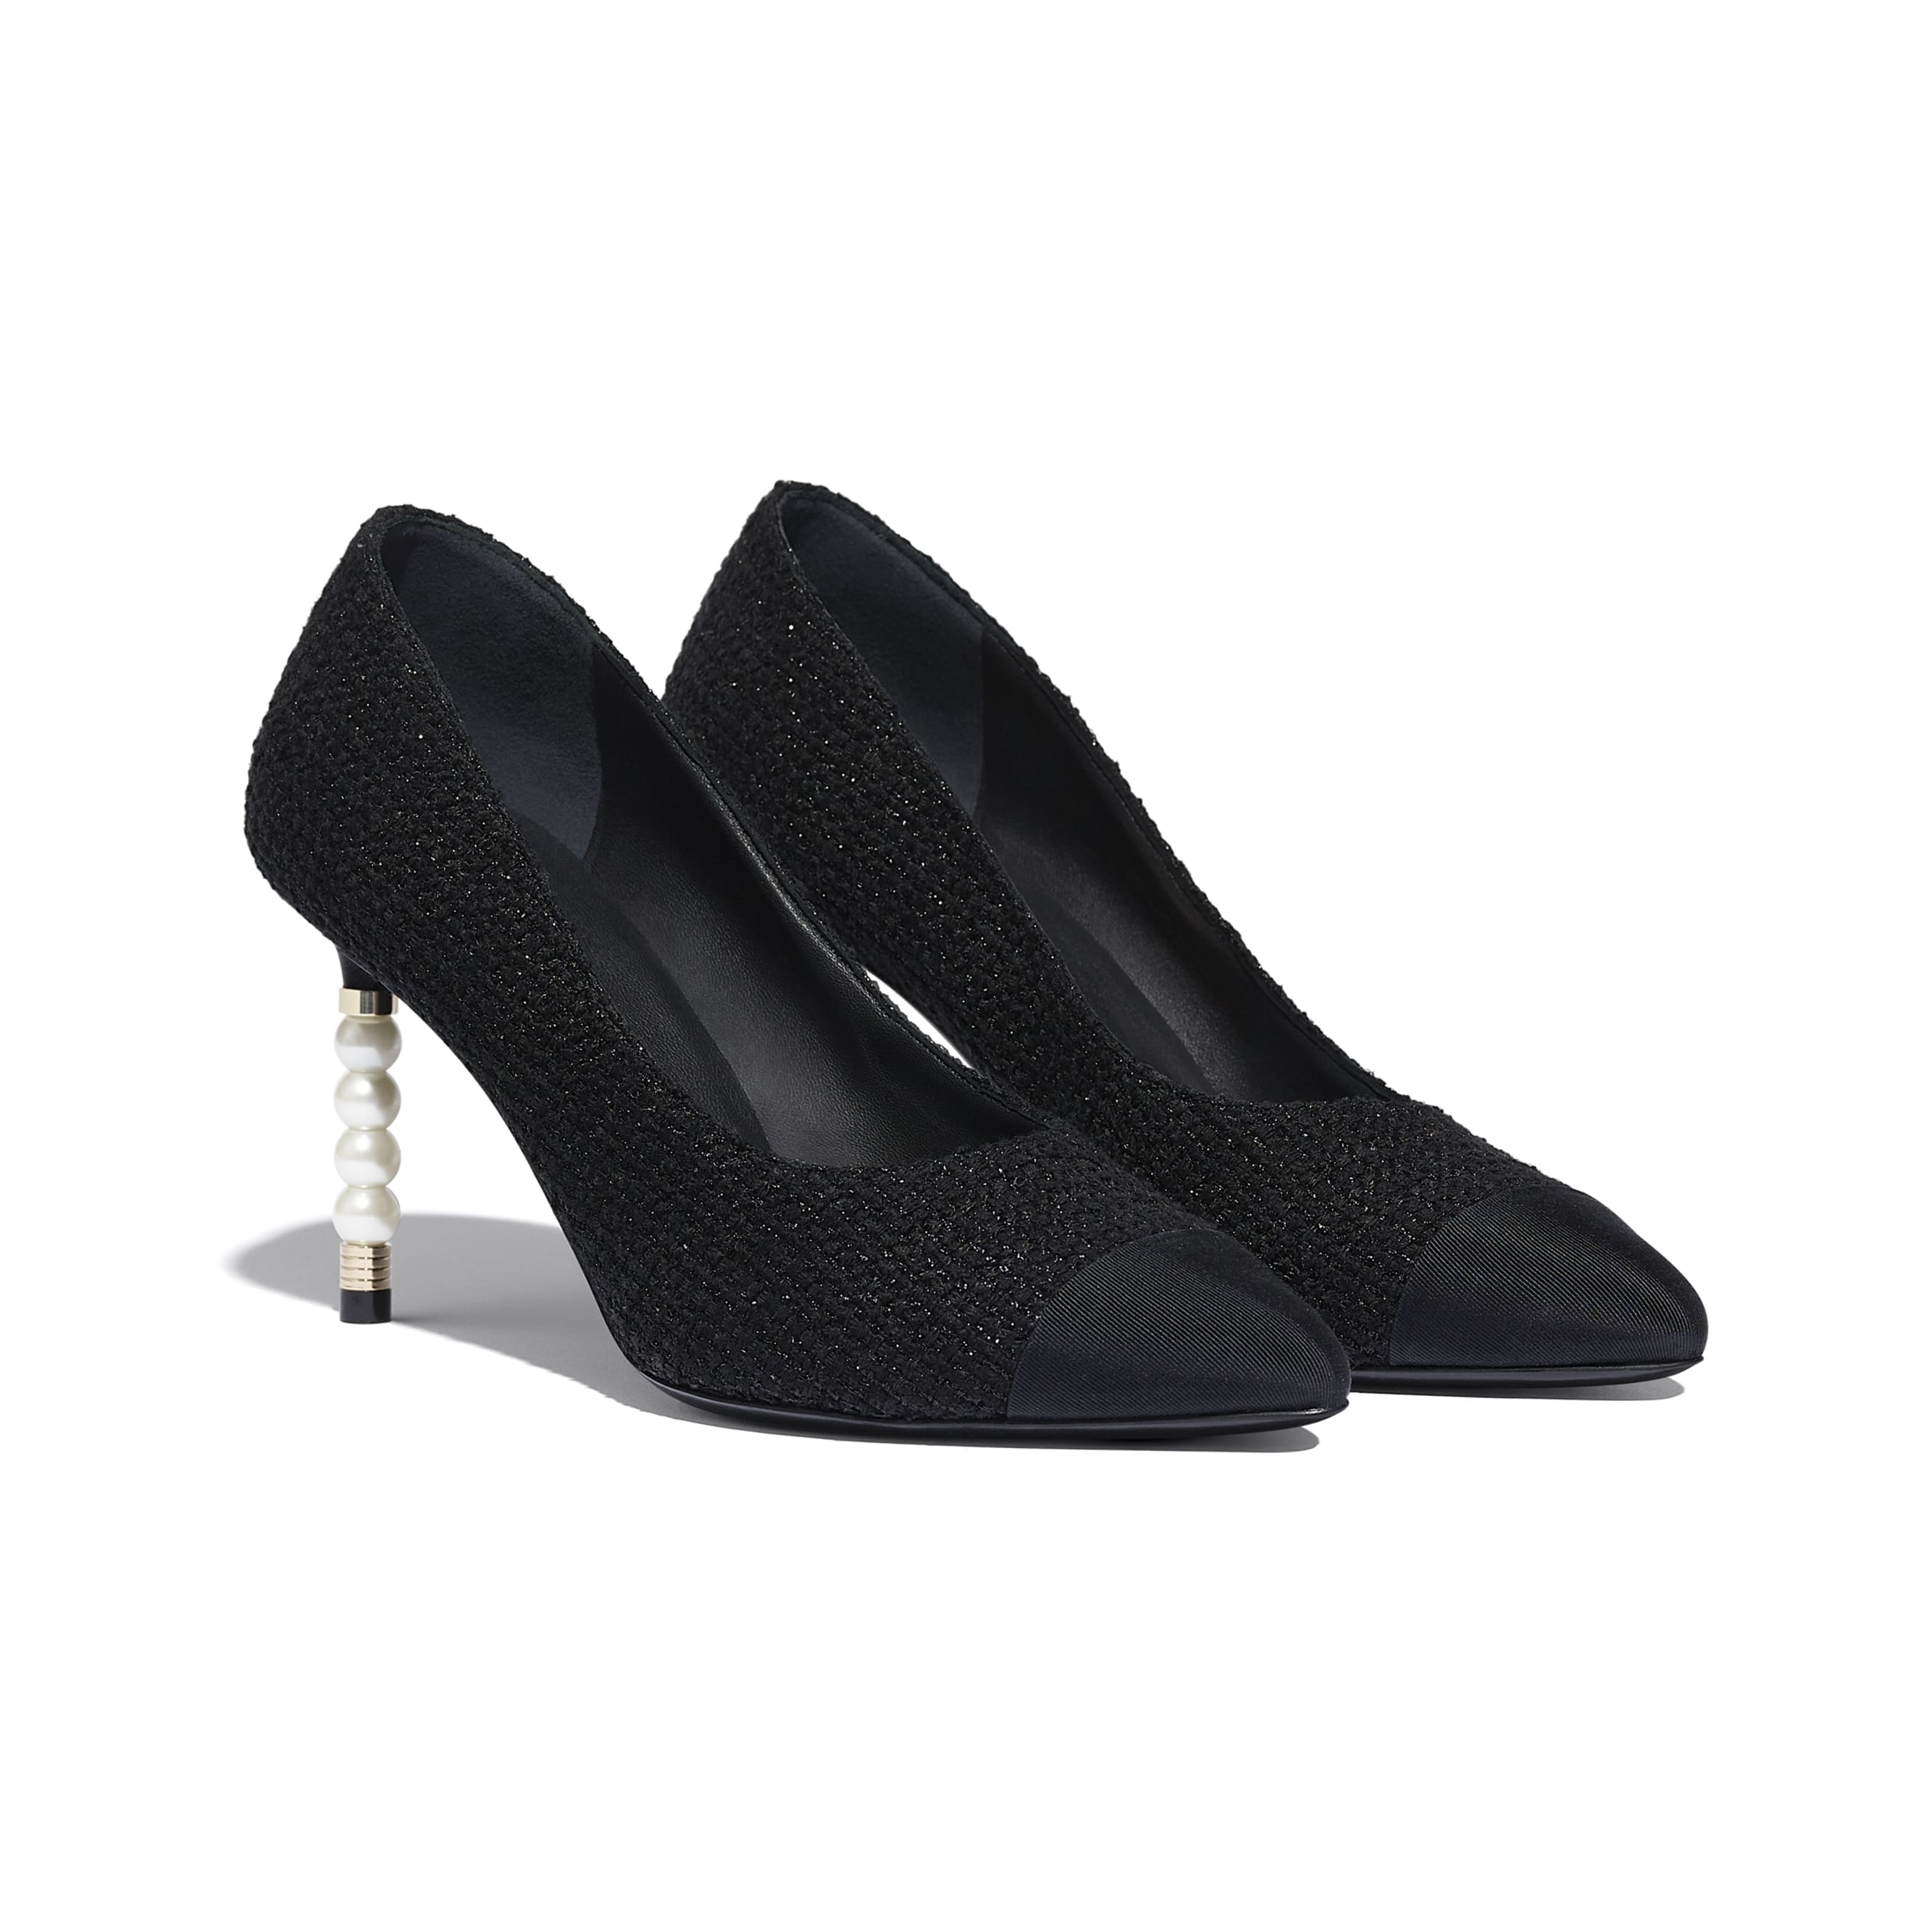 Pumps - Black - Tweed & Grosgrain - Alternative view - see standard sized version